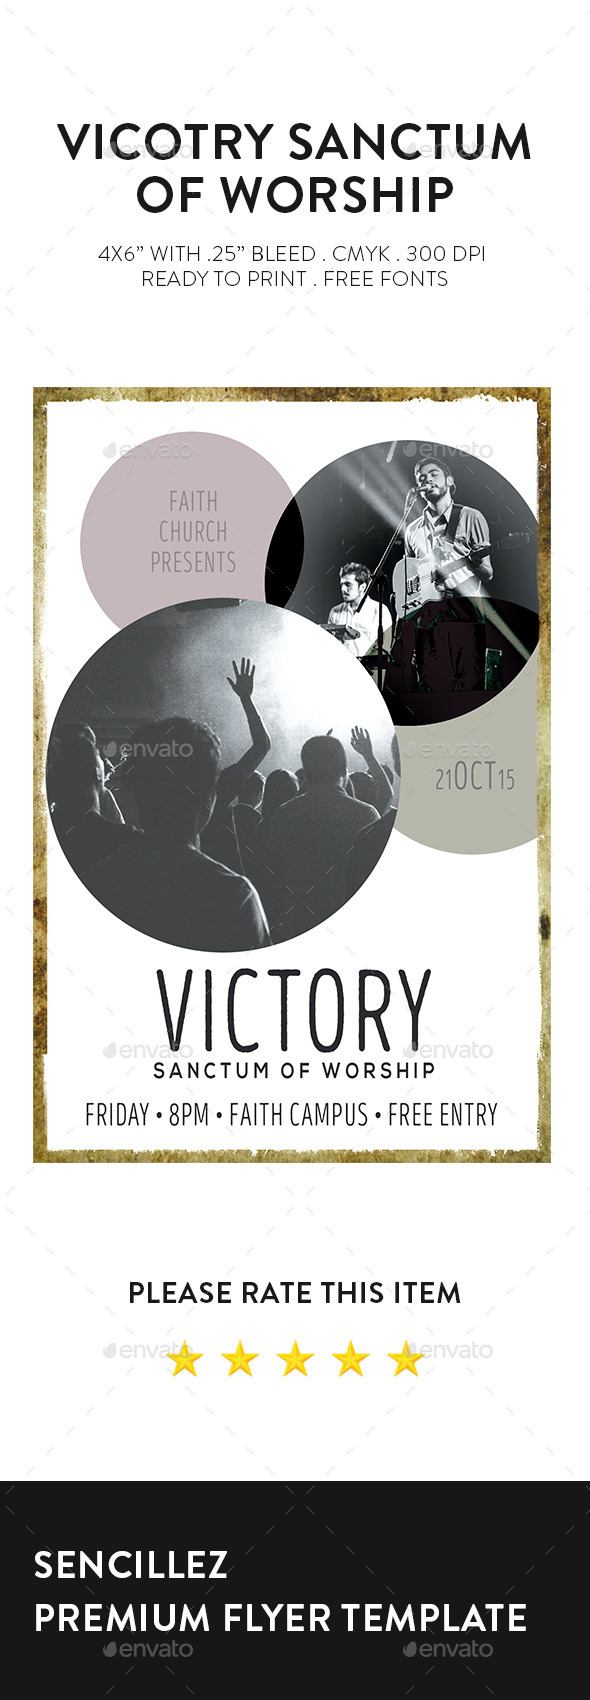 Victory Sanctum of Worship Church Flyer - Church Flyers